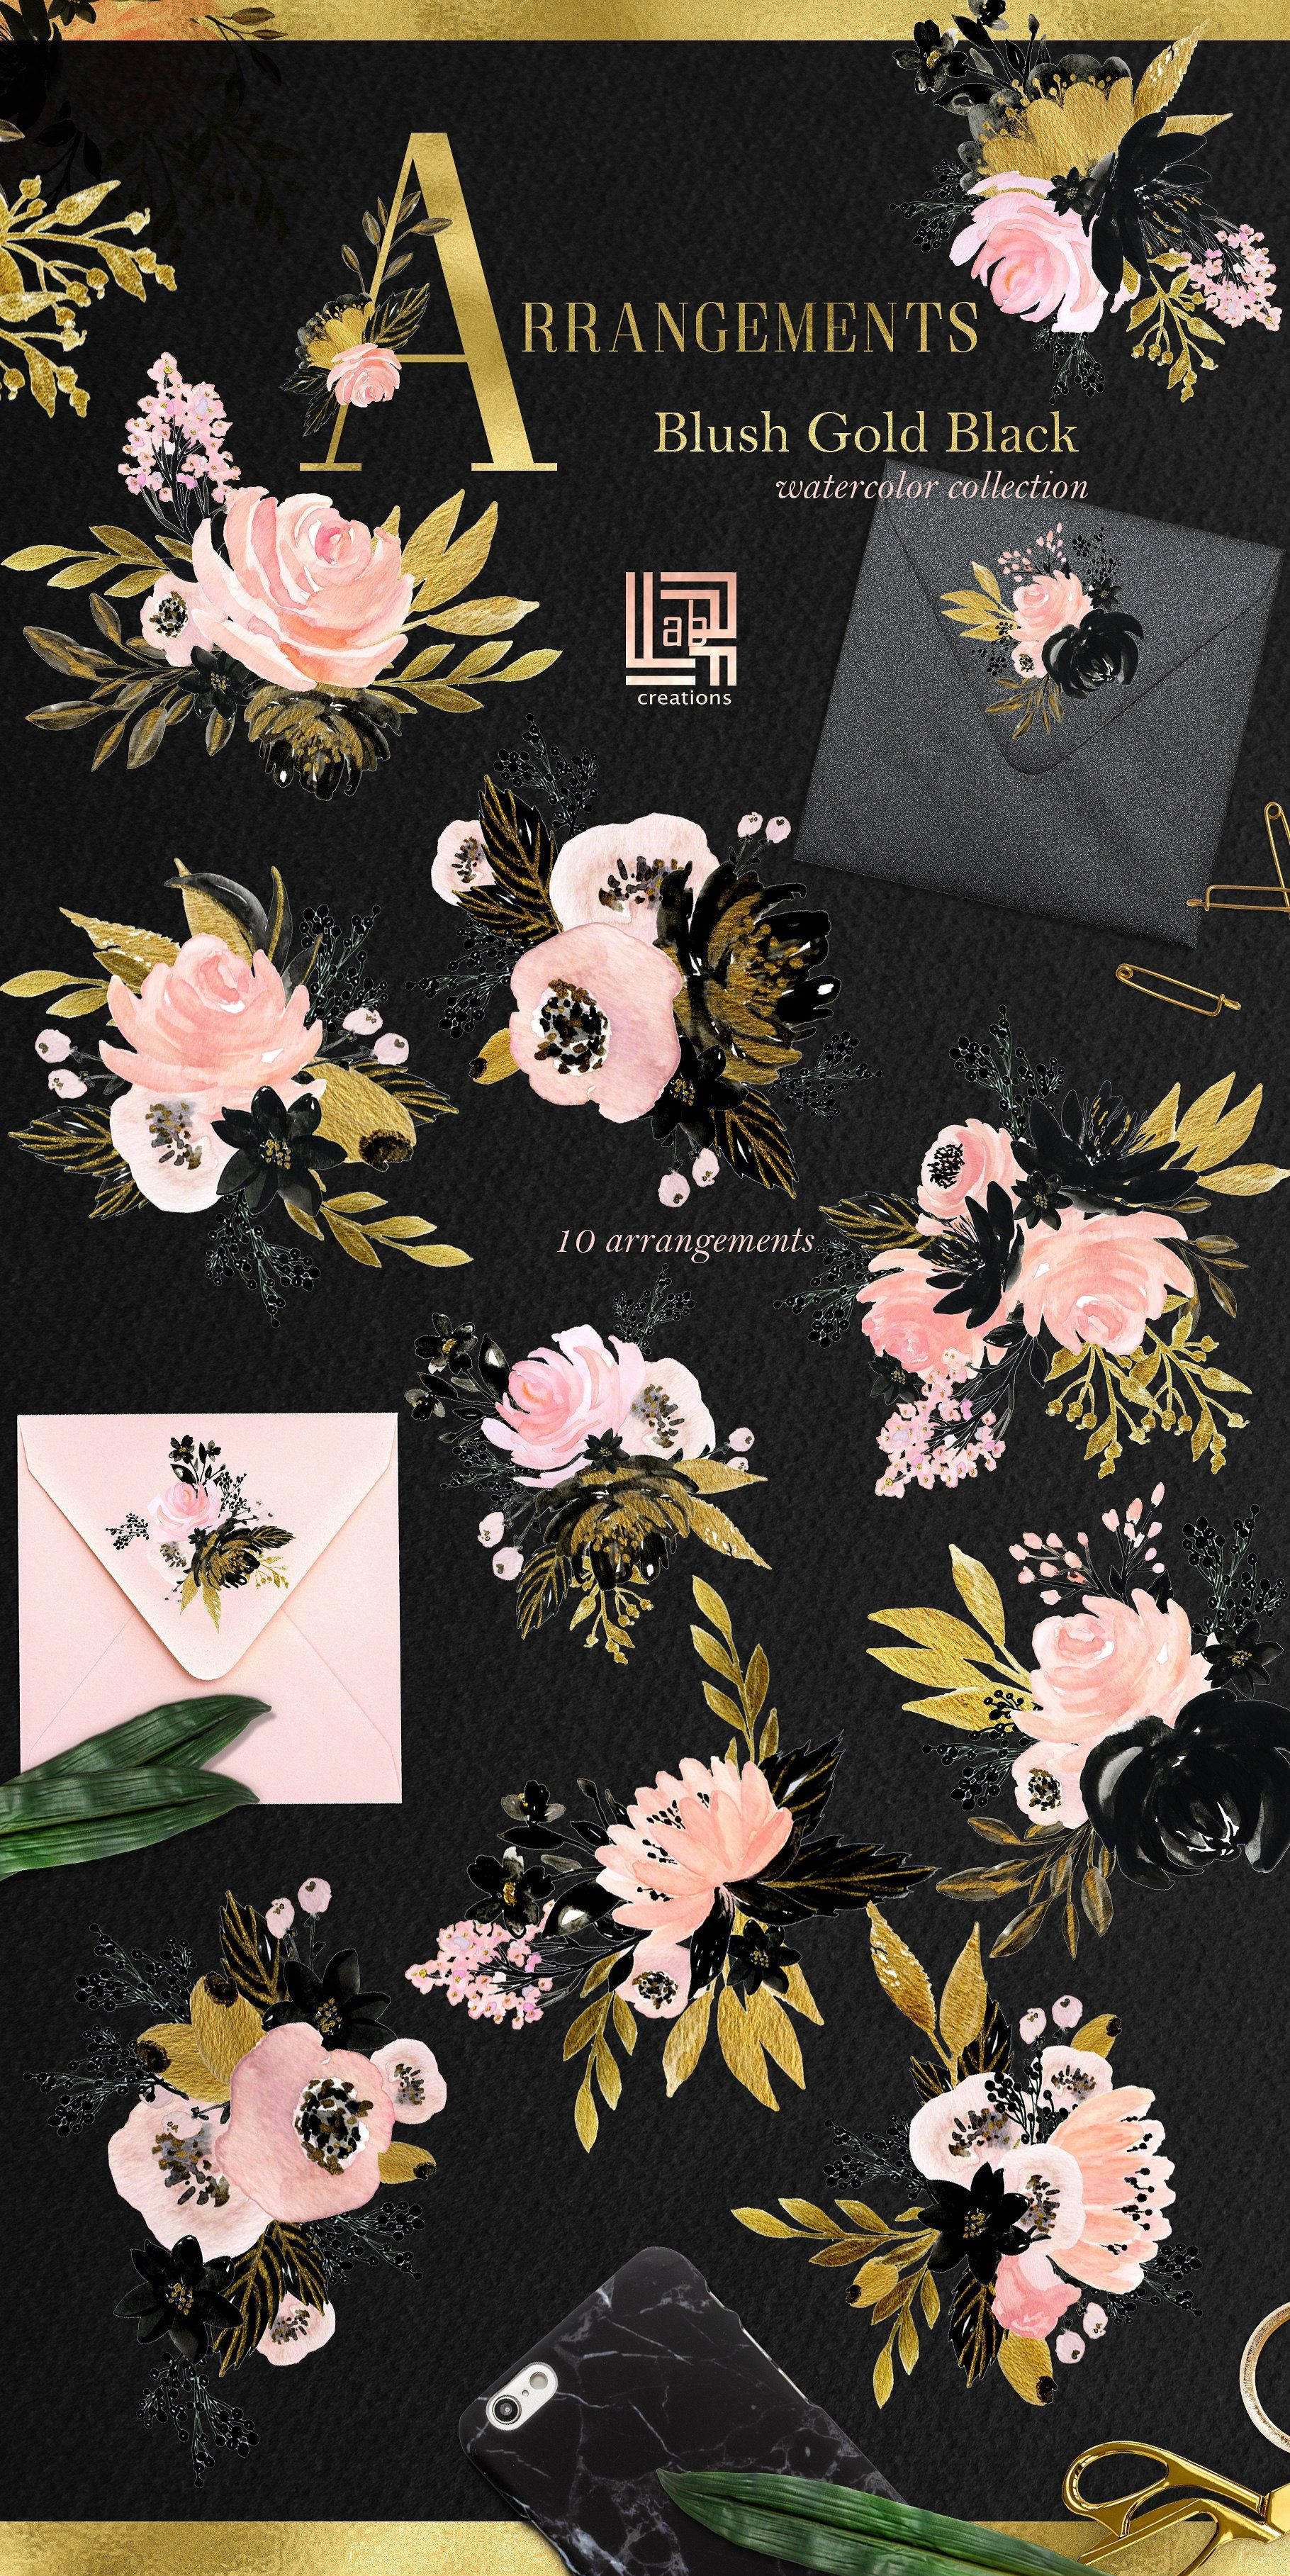 Blush Gold Black. Floral graphics. #painted#element#wedding#watercolour |  Blush and gold, Free graphic design, Graphic design resources